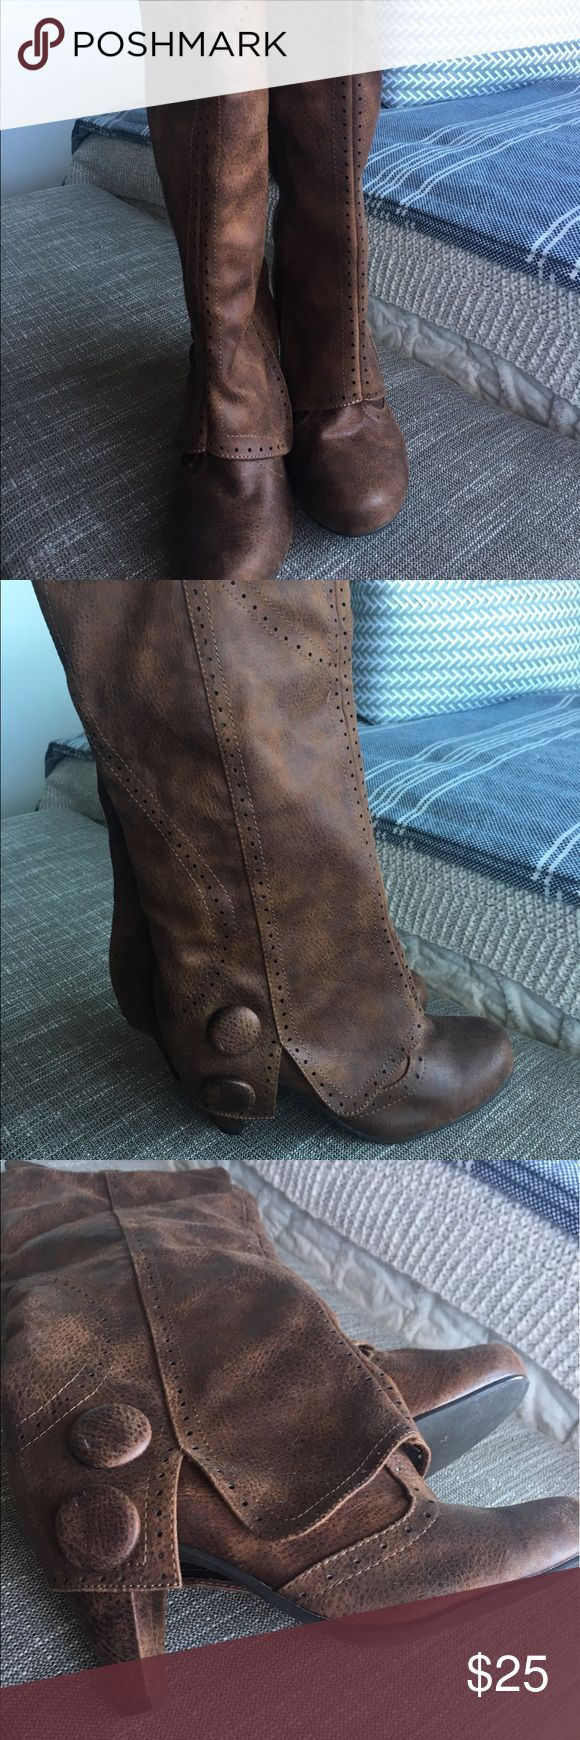 Brown knee high boots Super cute brown heeled boots. Hits right below knee. In excellent condition. Not Rated Shoes Heeled Boots